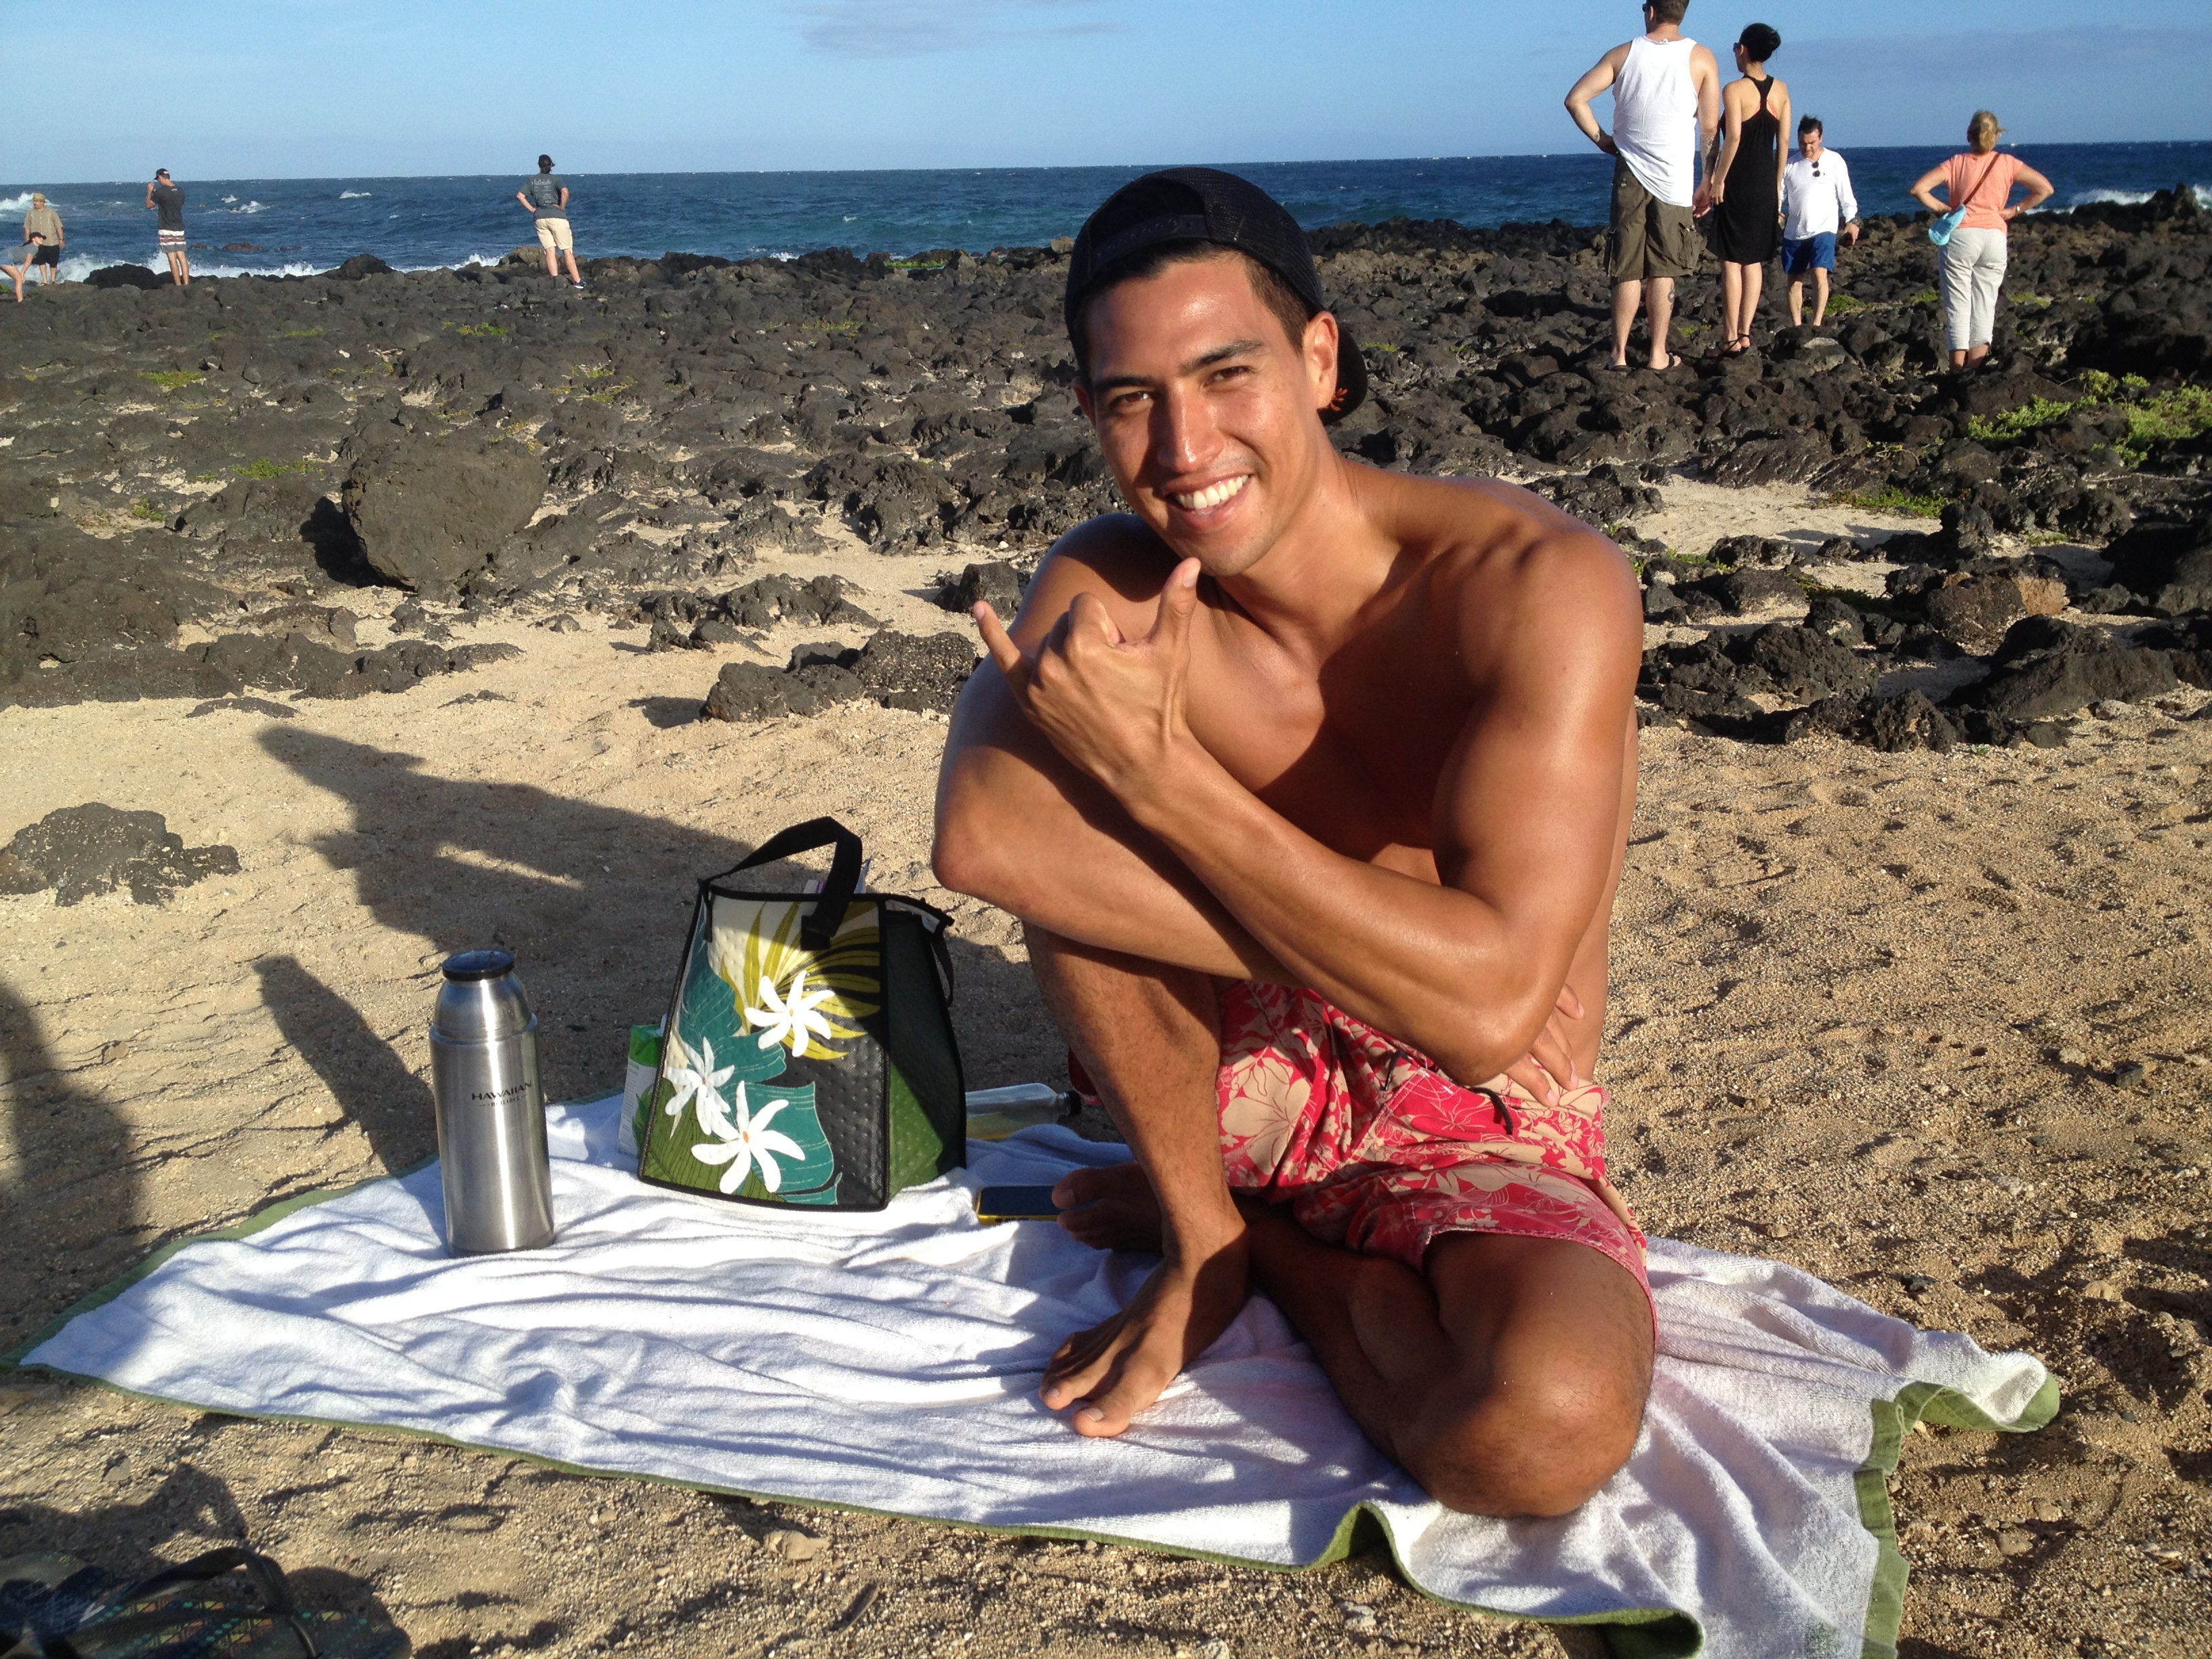 Gay dating hawaii